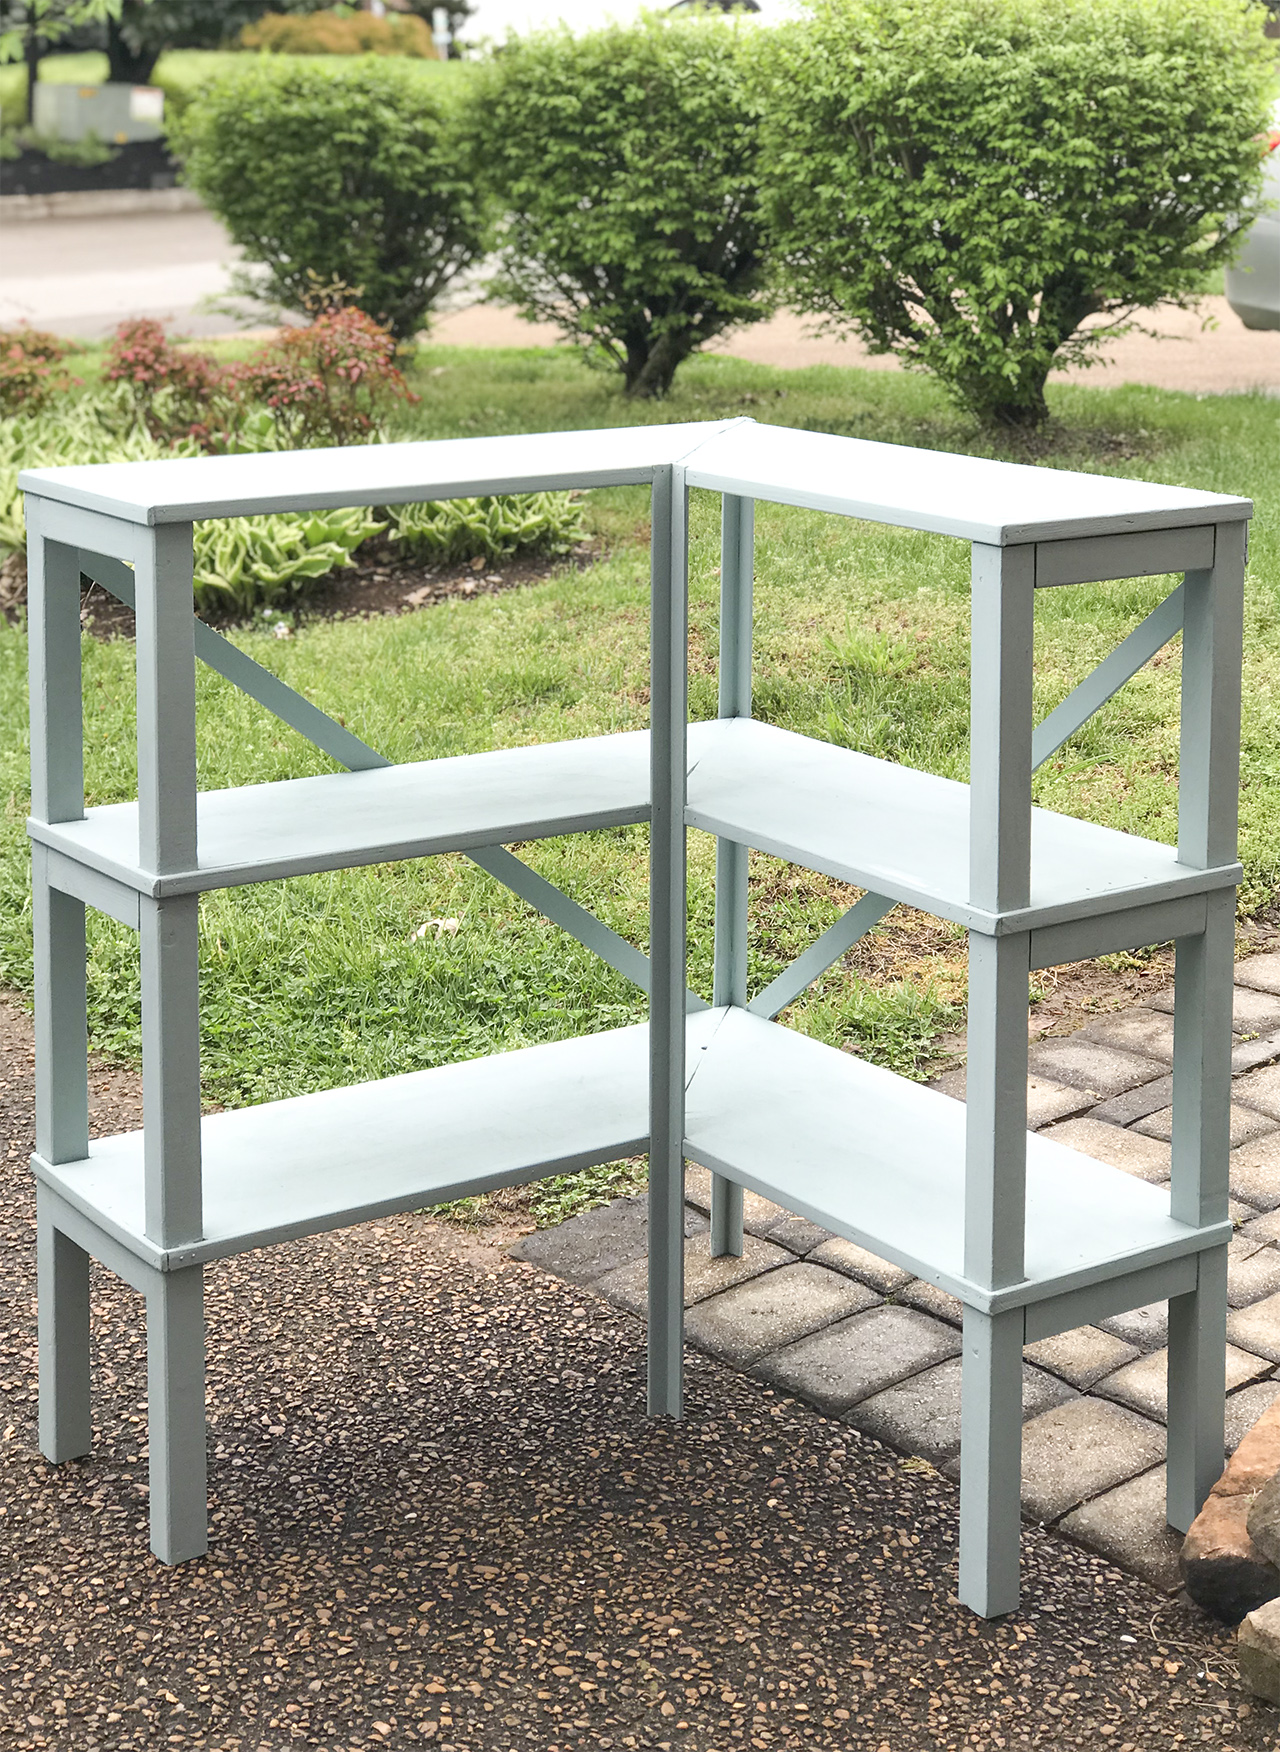 Simple thrift store shelf makeover. Super easy and quick project. #thriftstoremakeover #thriftstore #thriftystyleteam #upcycle #furnituremakeover